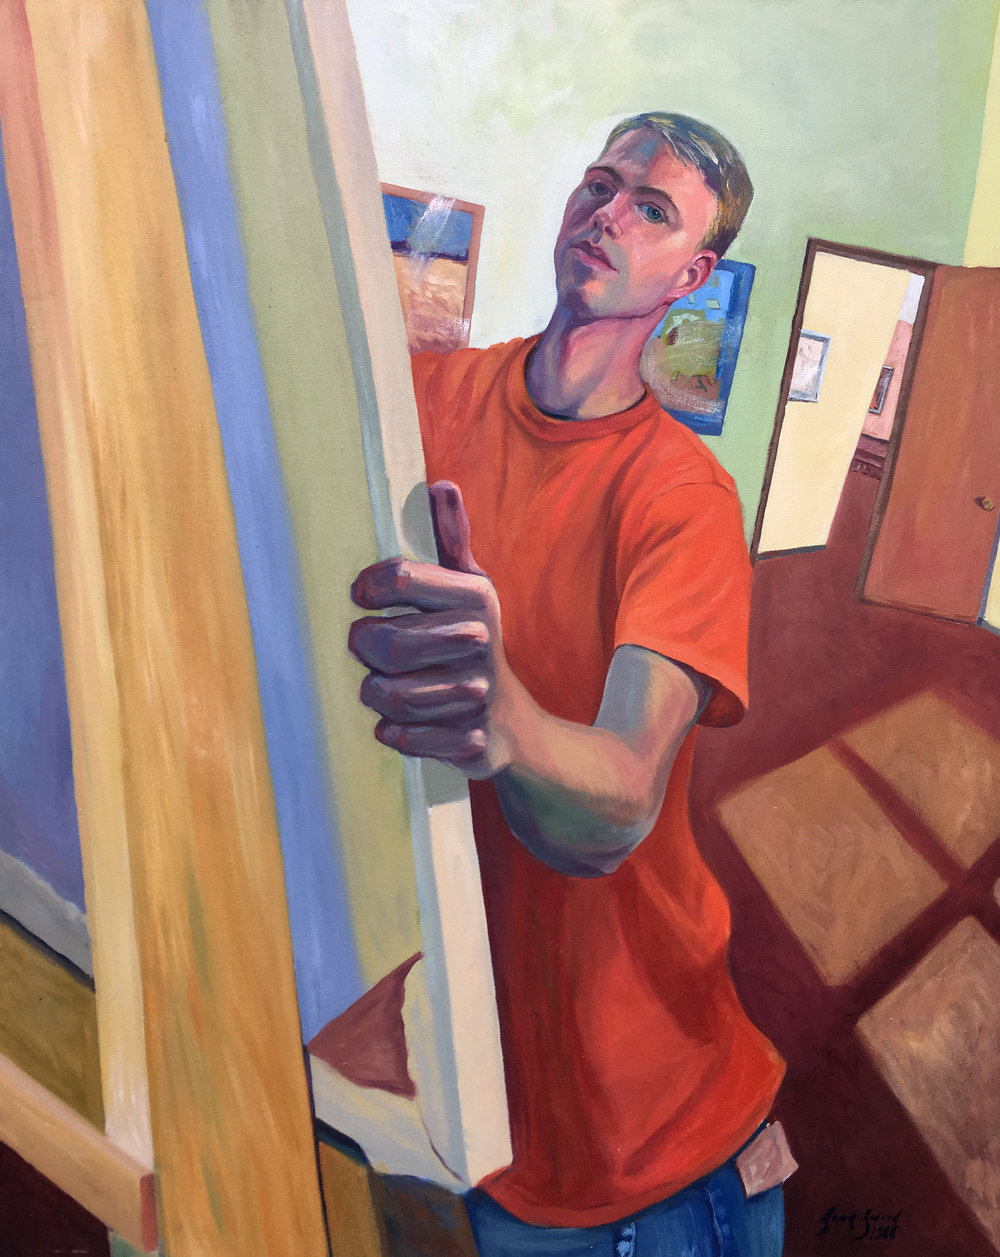 Self-portrait 1988